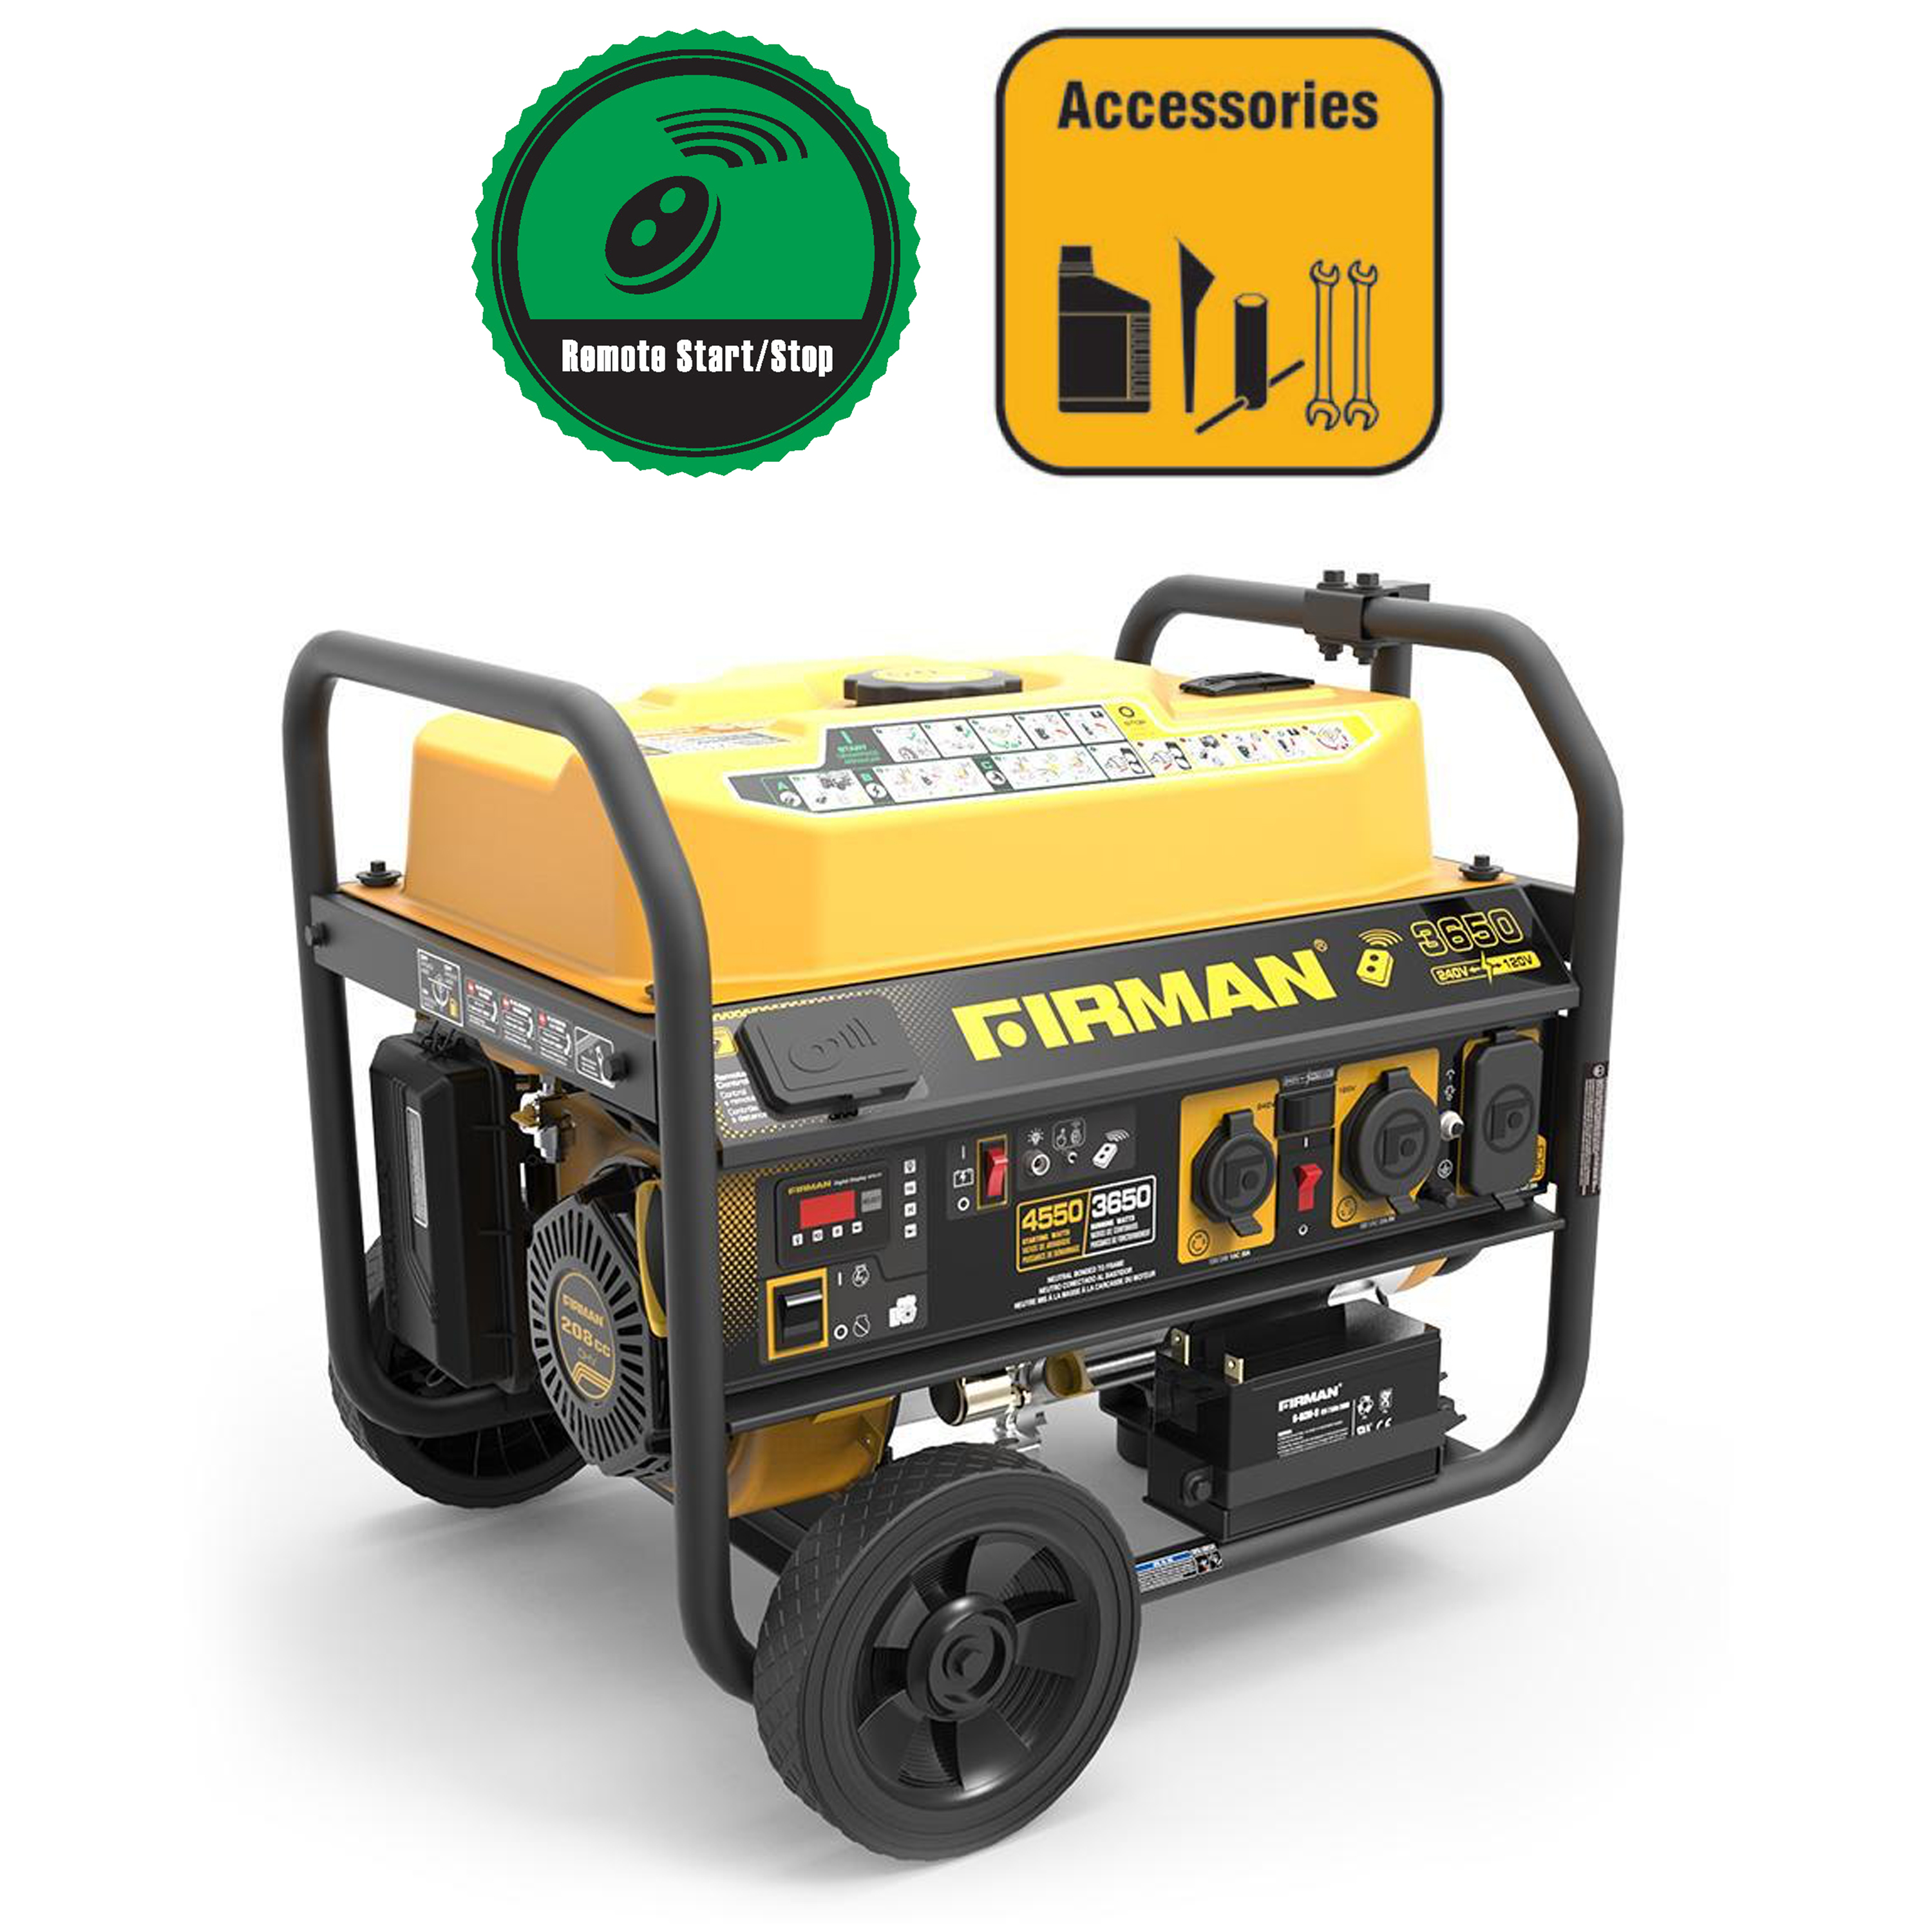 Firman P03612 4550/3650 Watt 120/240 V Gas Remote Start Generator, cETL